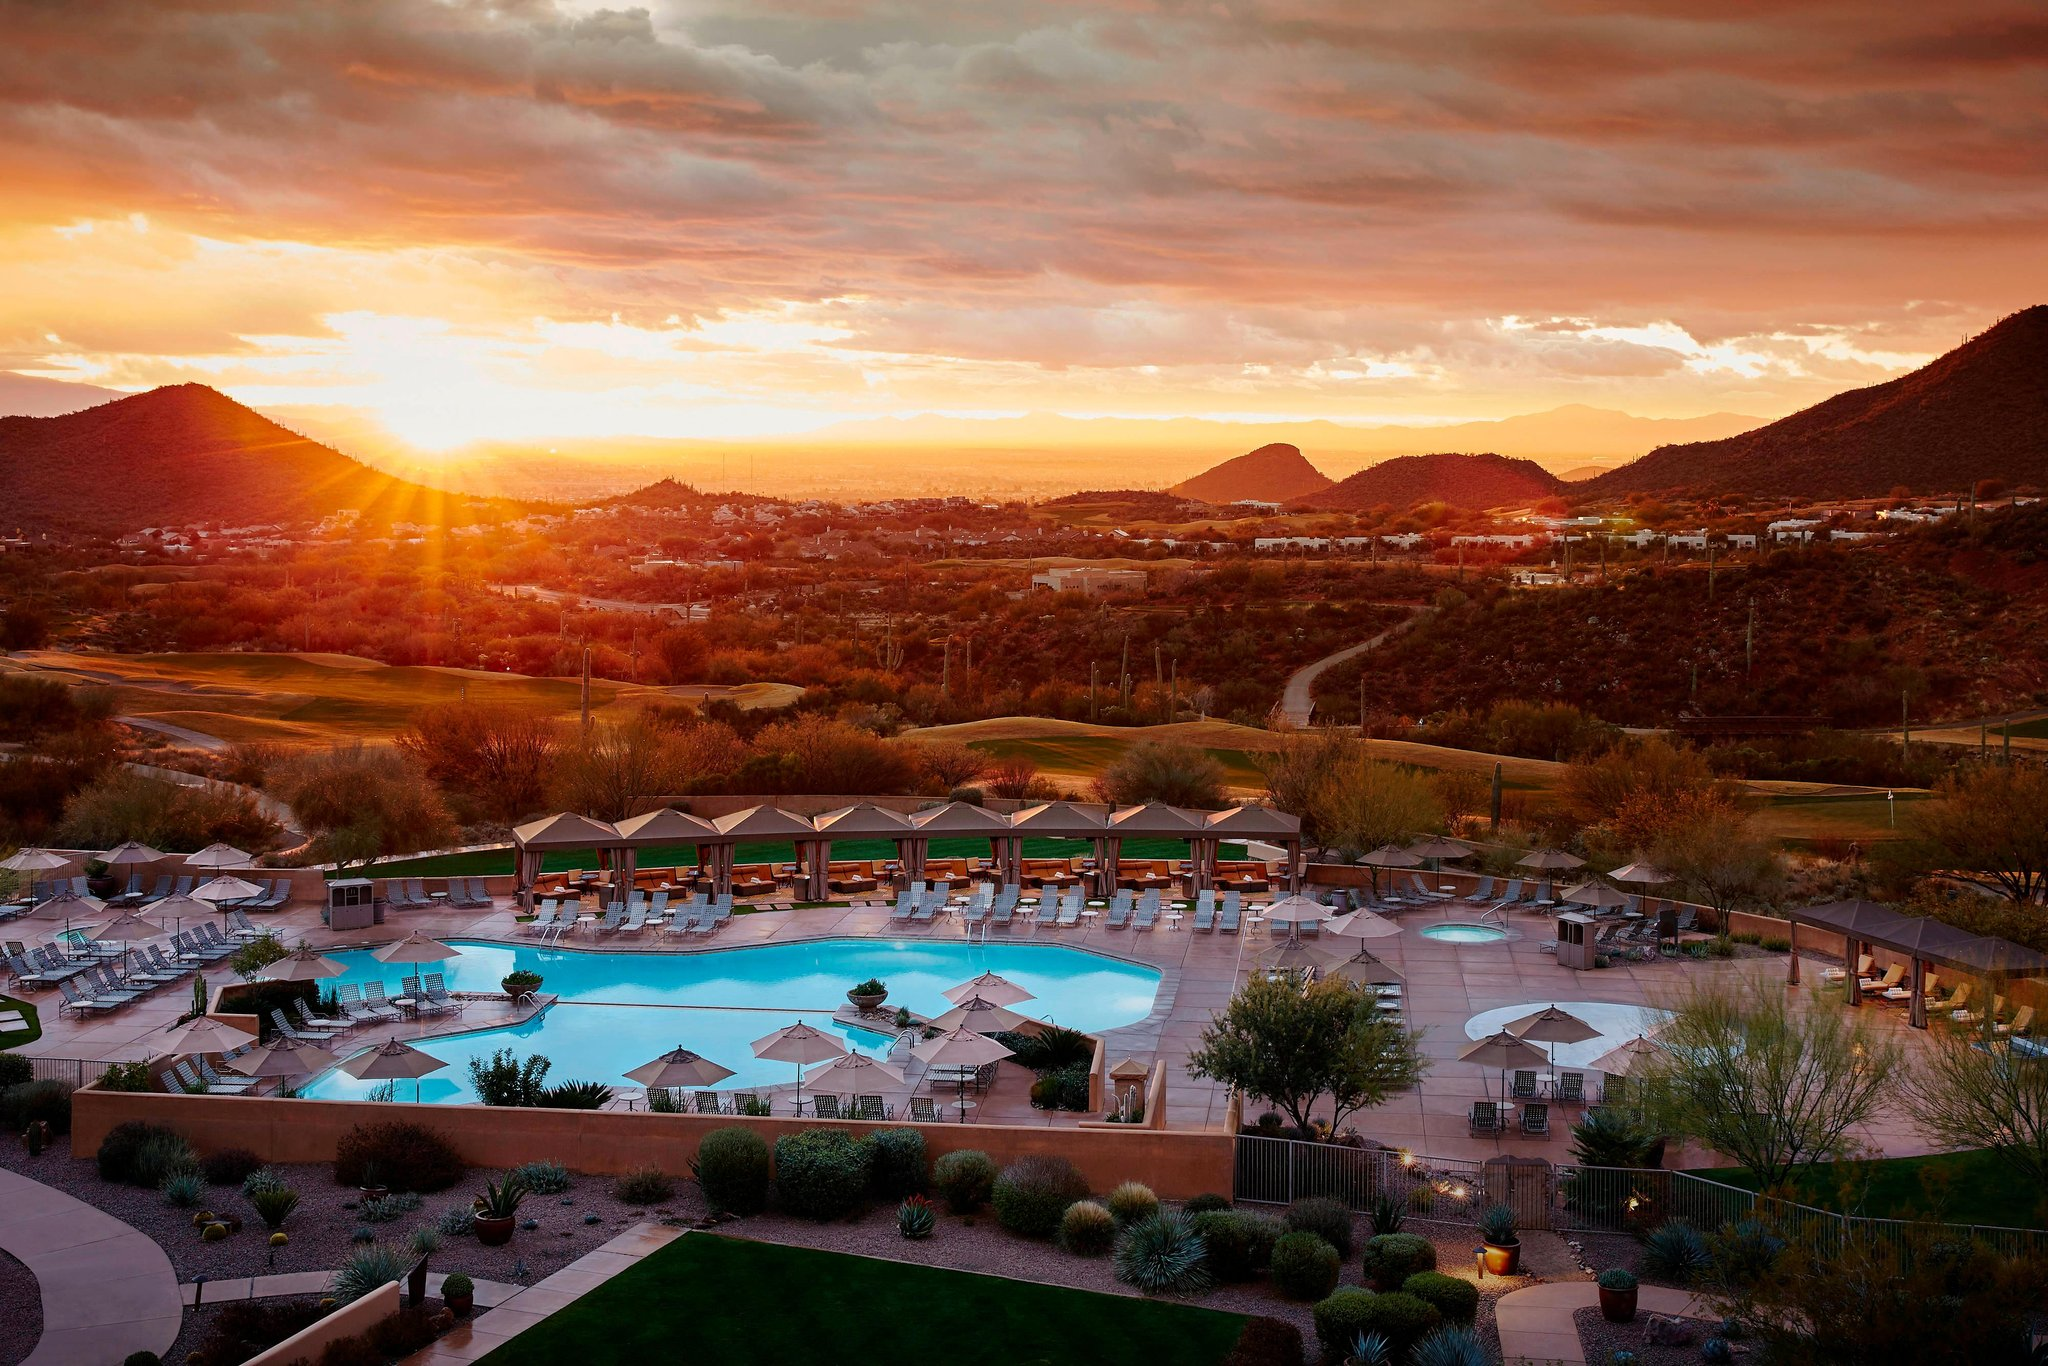 JW Marriott Tucson Starr Pass Resort